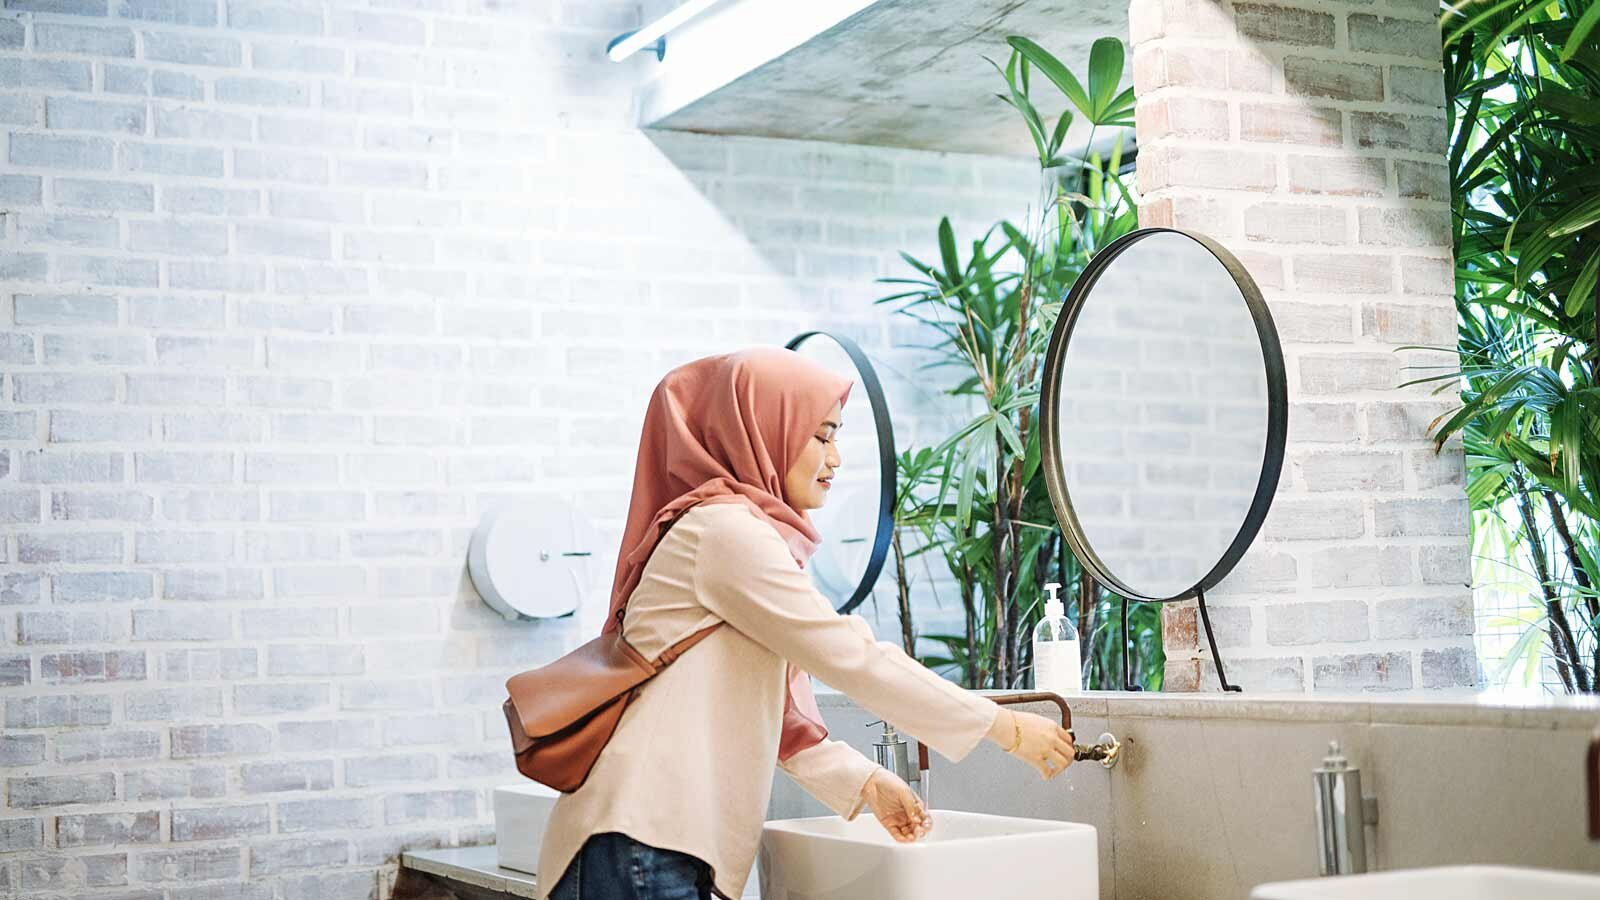 Woman with headscarf using the sink in a restroom.